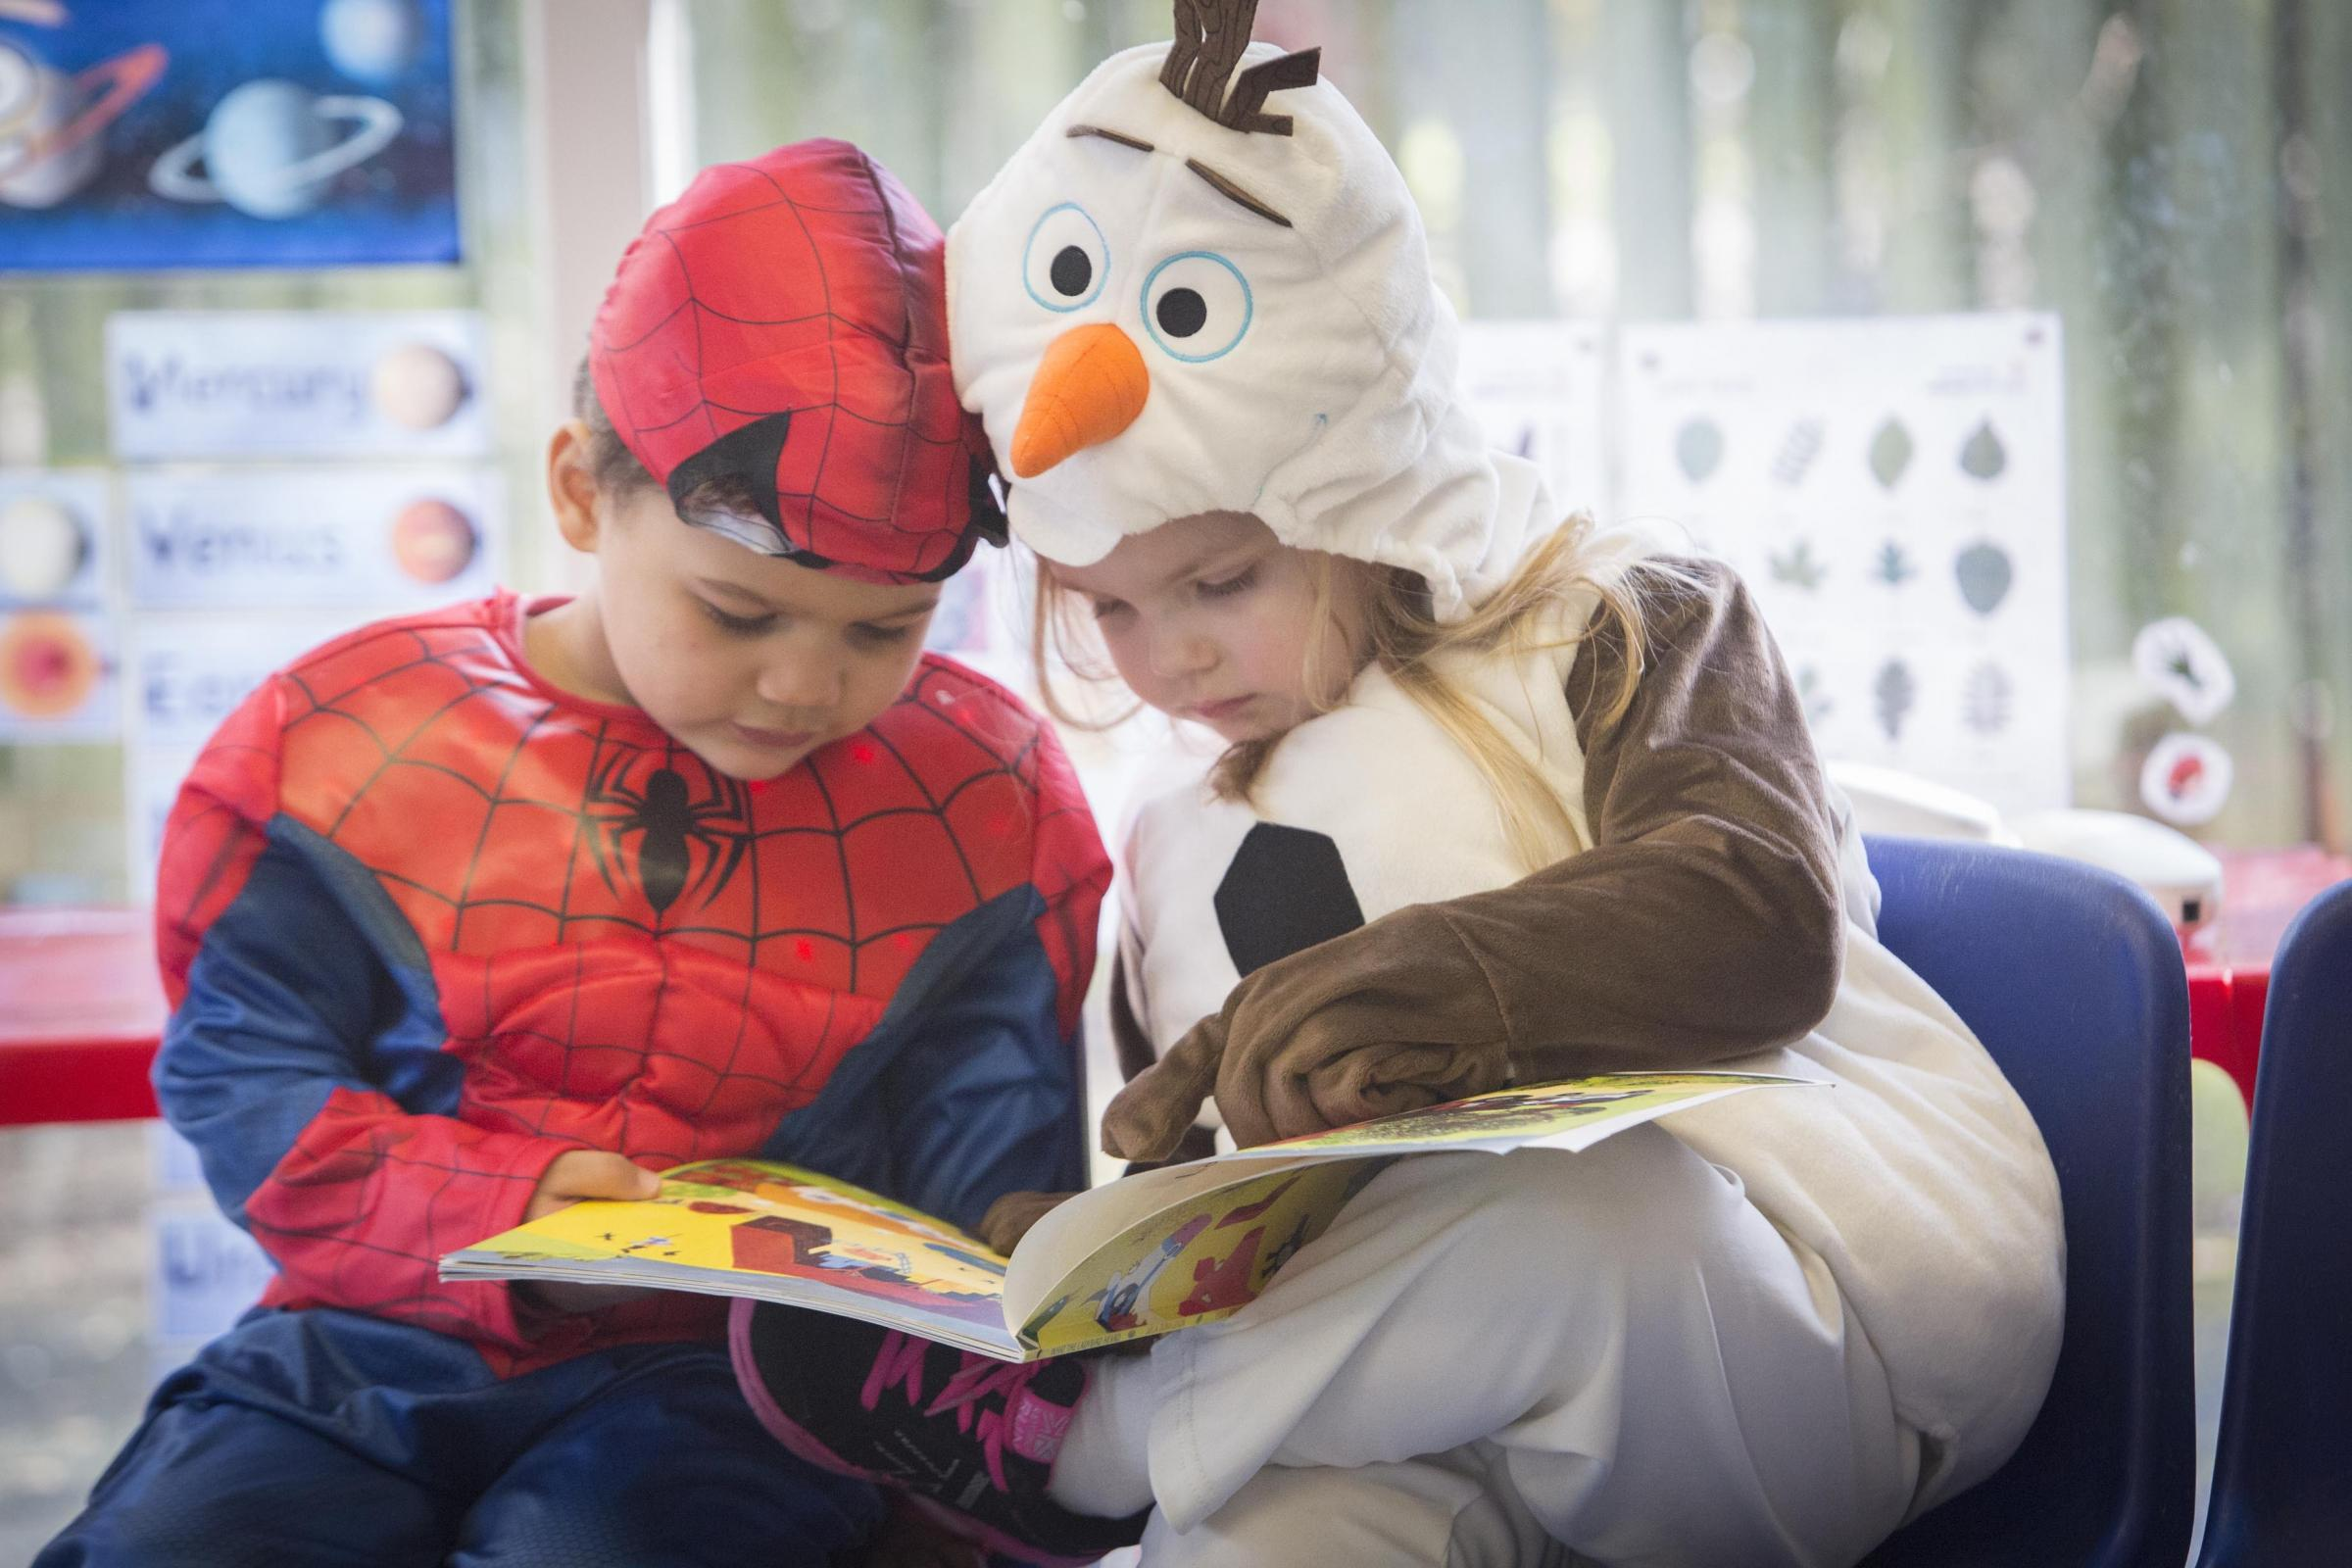 World Book Day helps to encourage children to read